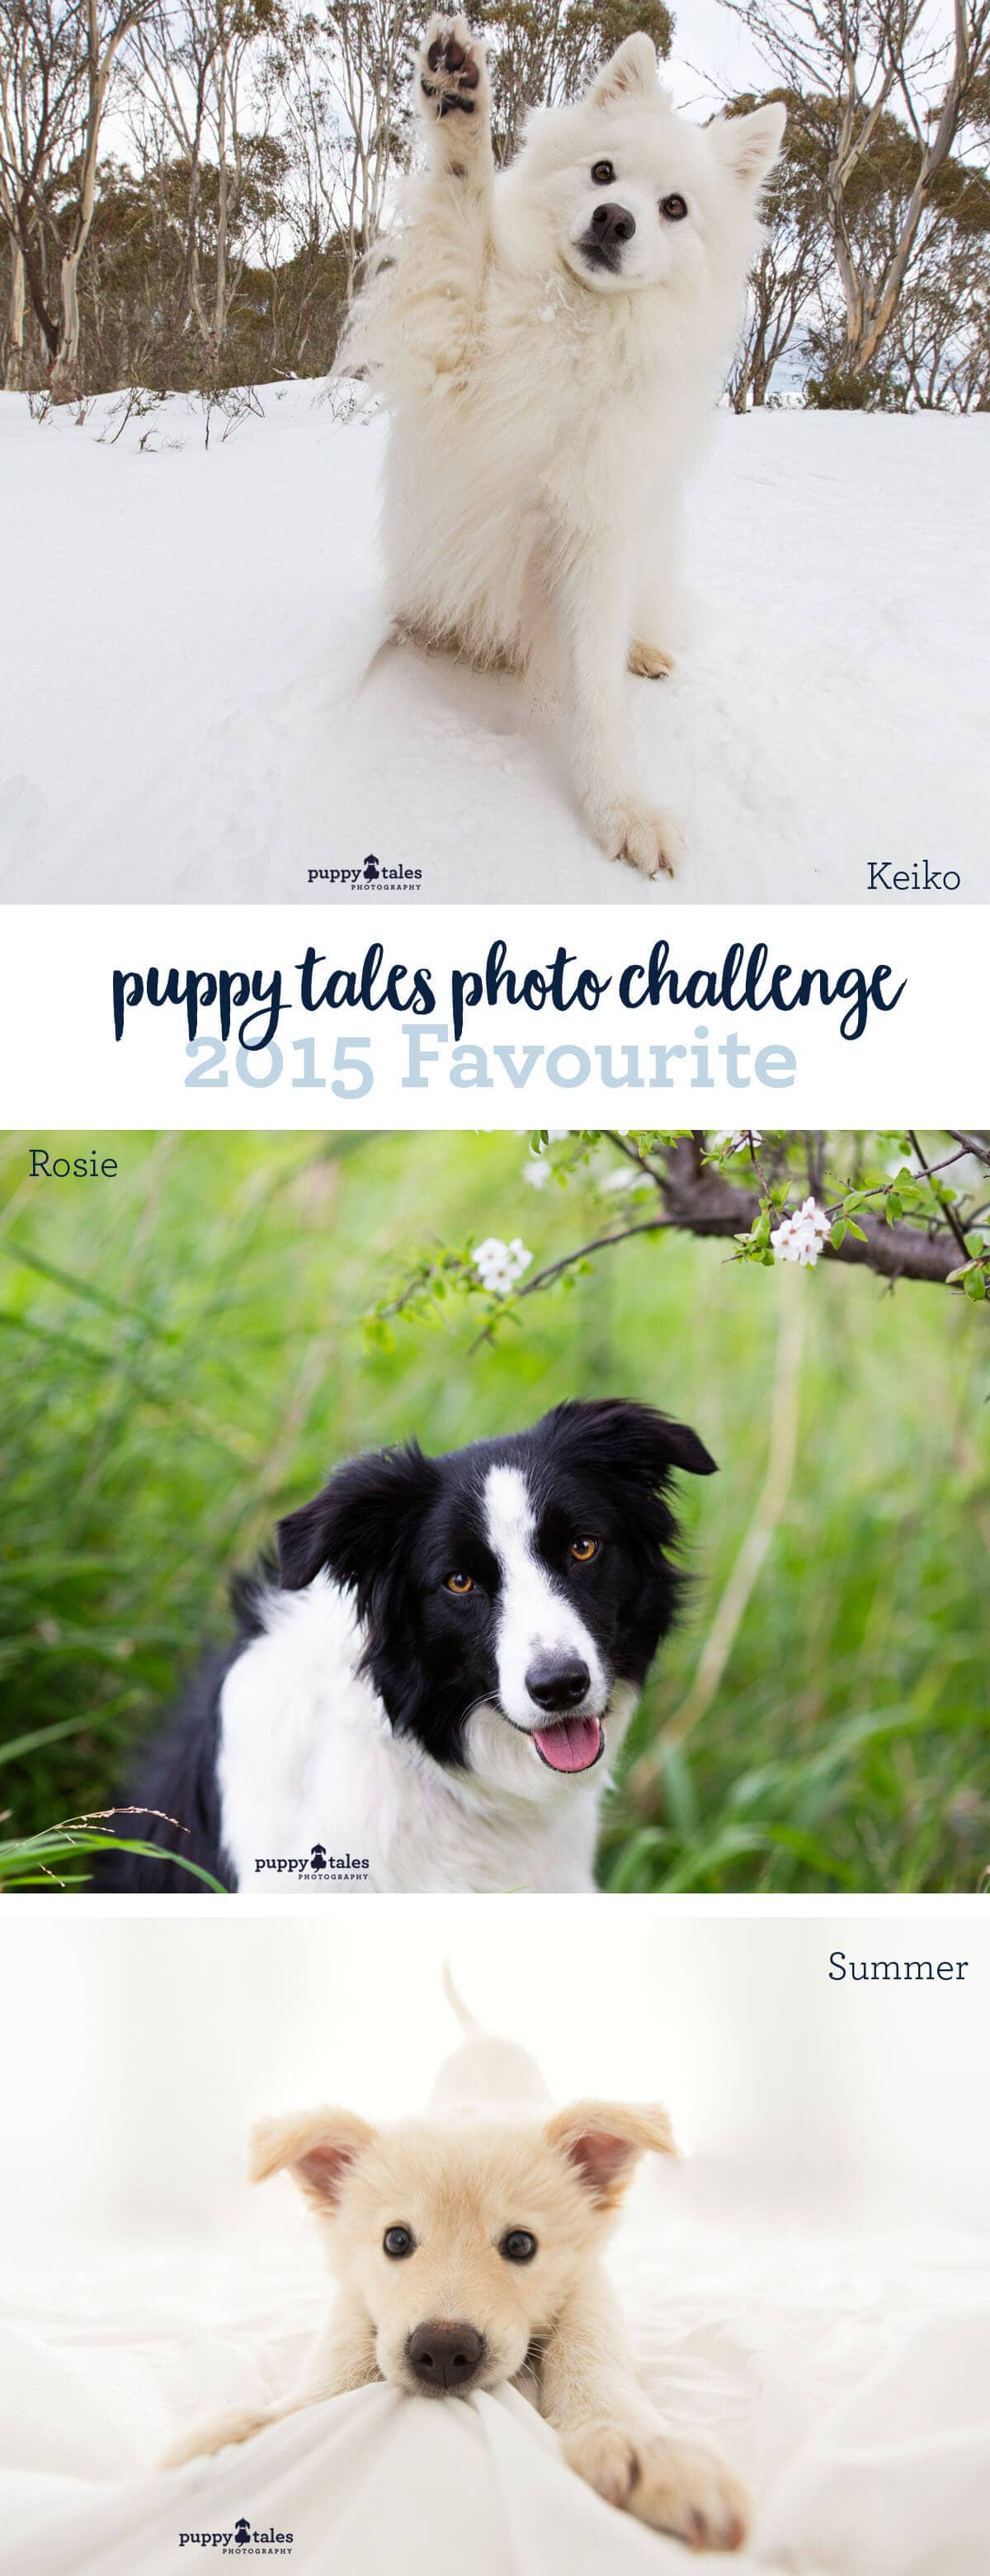 Puppy Tales Photo Challenge ~ 2015 Favourite